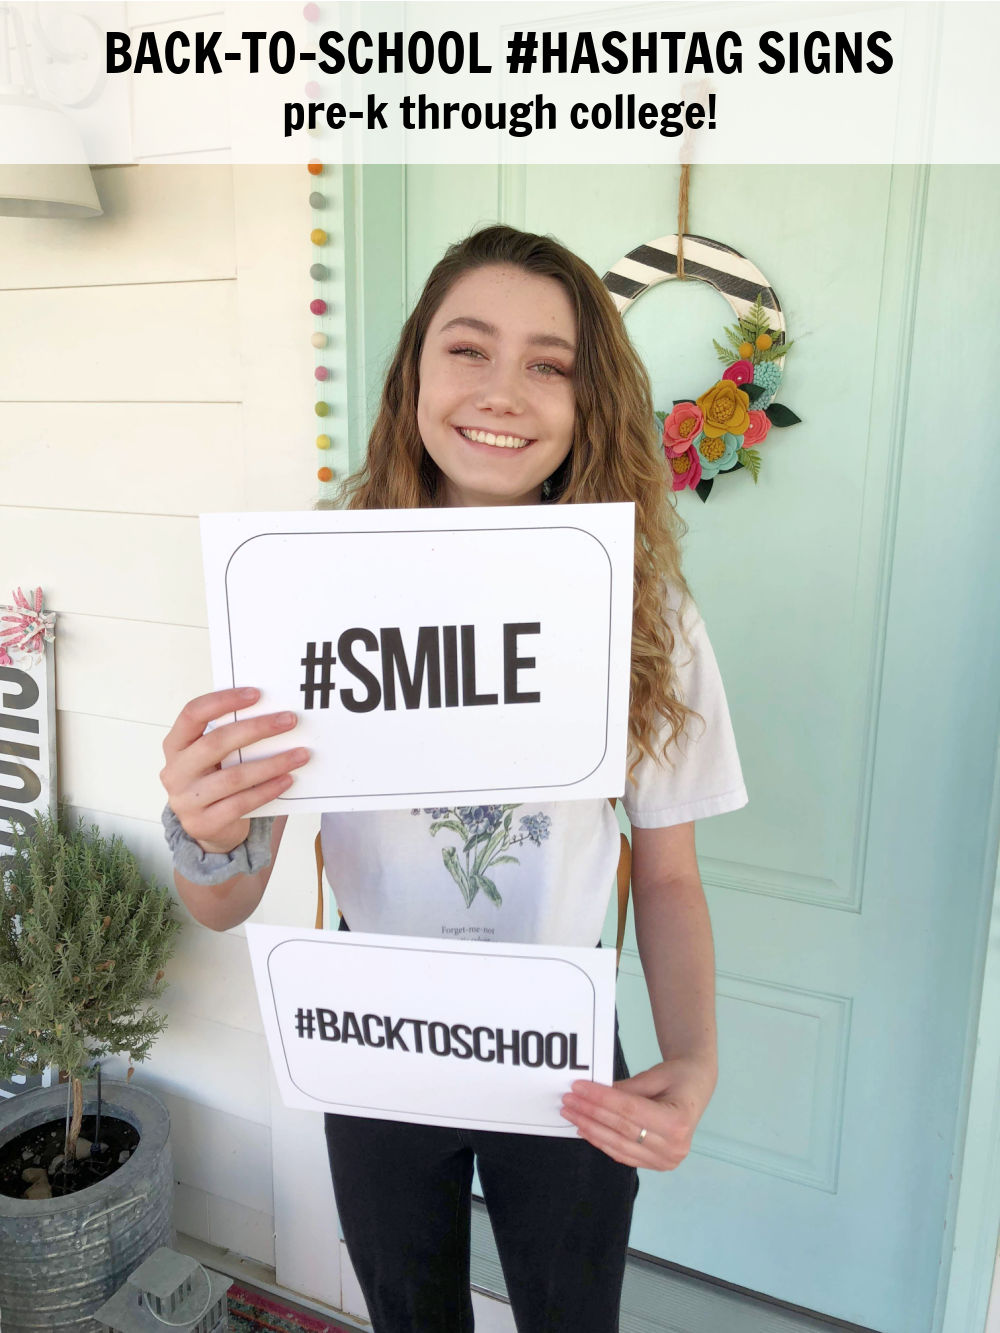 Instagram-Ready #Hashtag Back to School Photo Prop Printables. Capture those first day of school memories with these fun hashtag free printable signs!